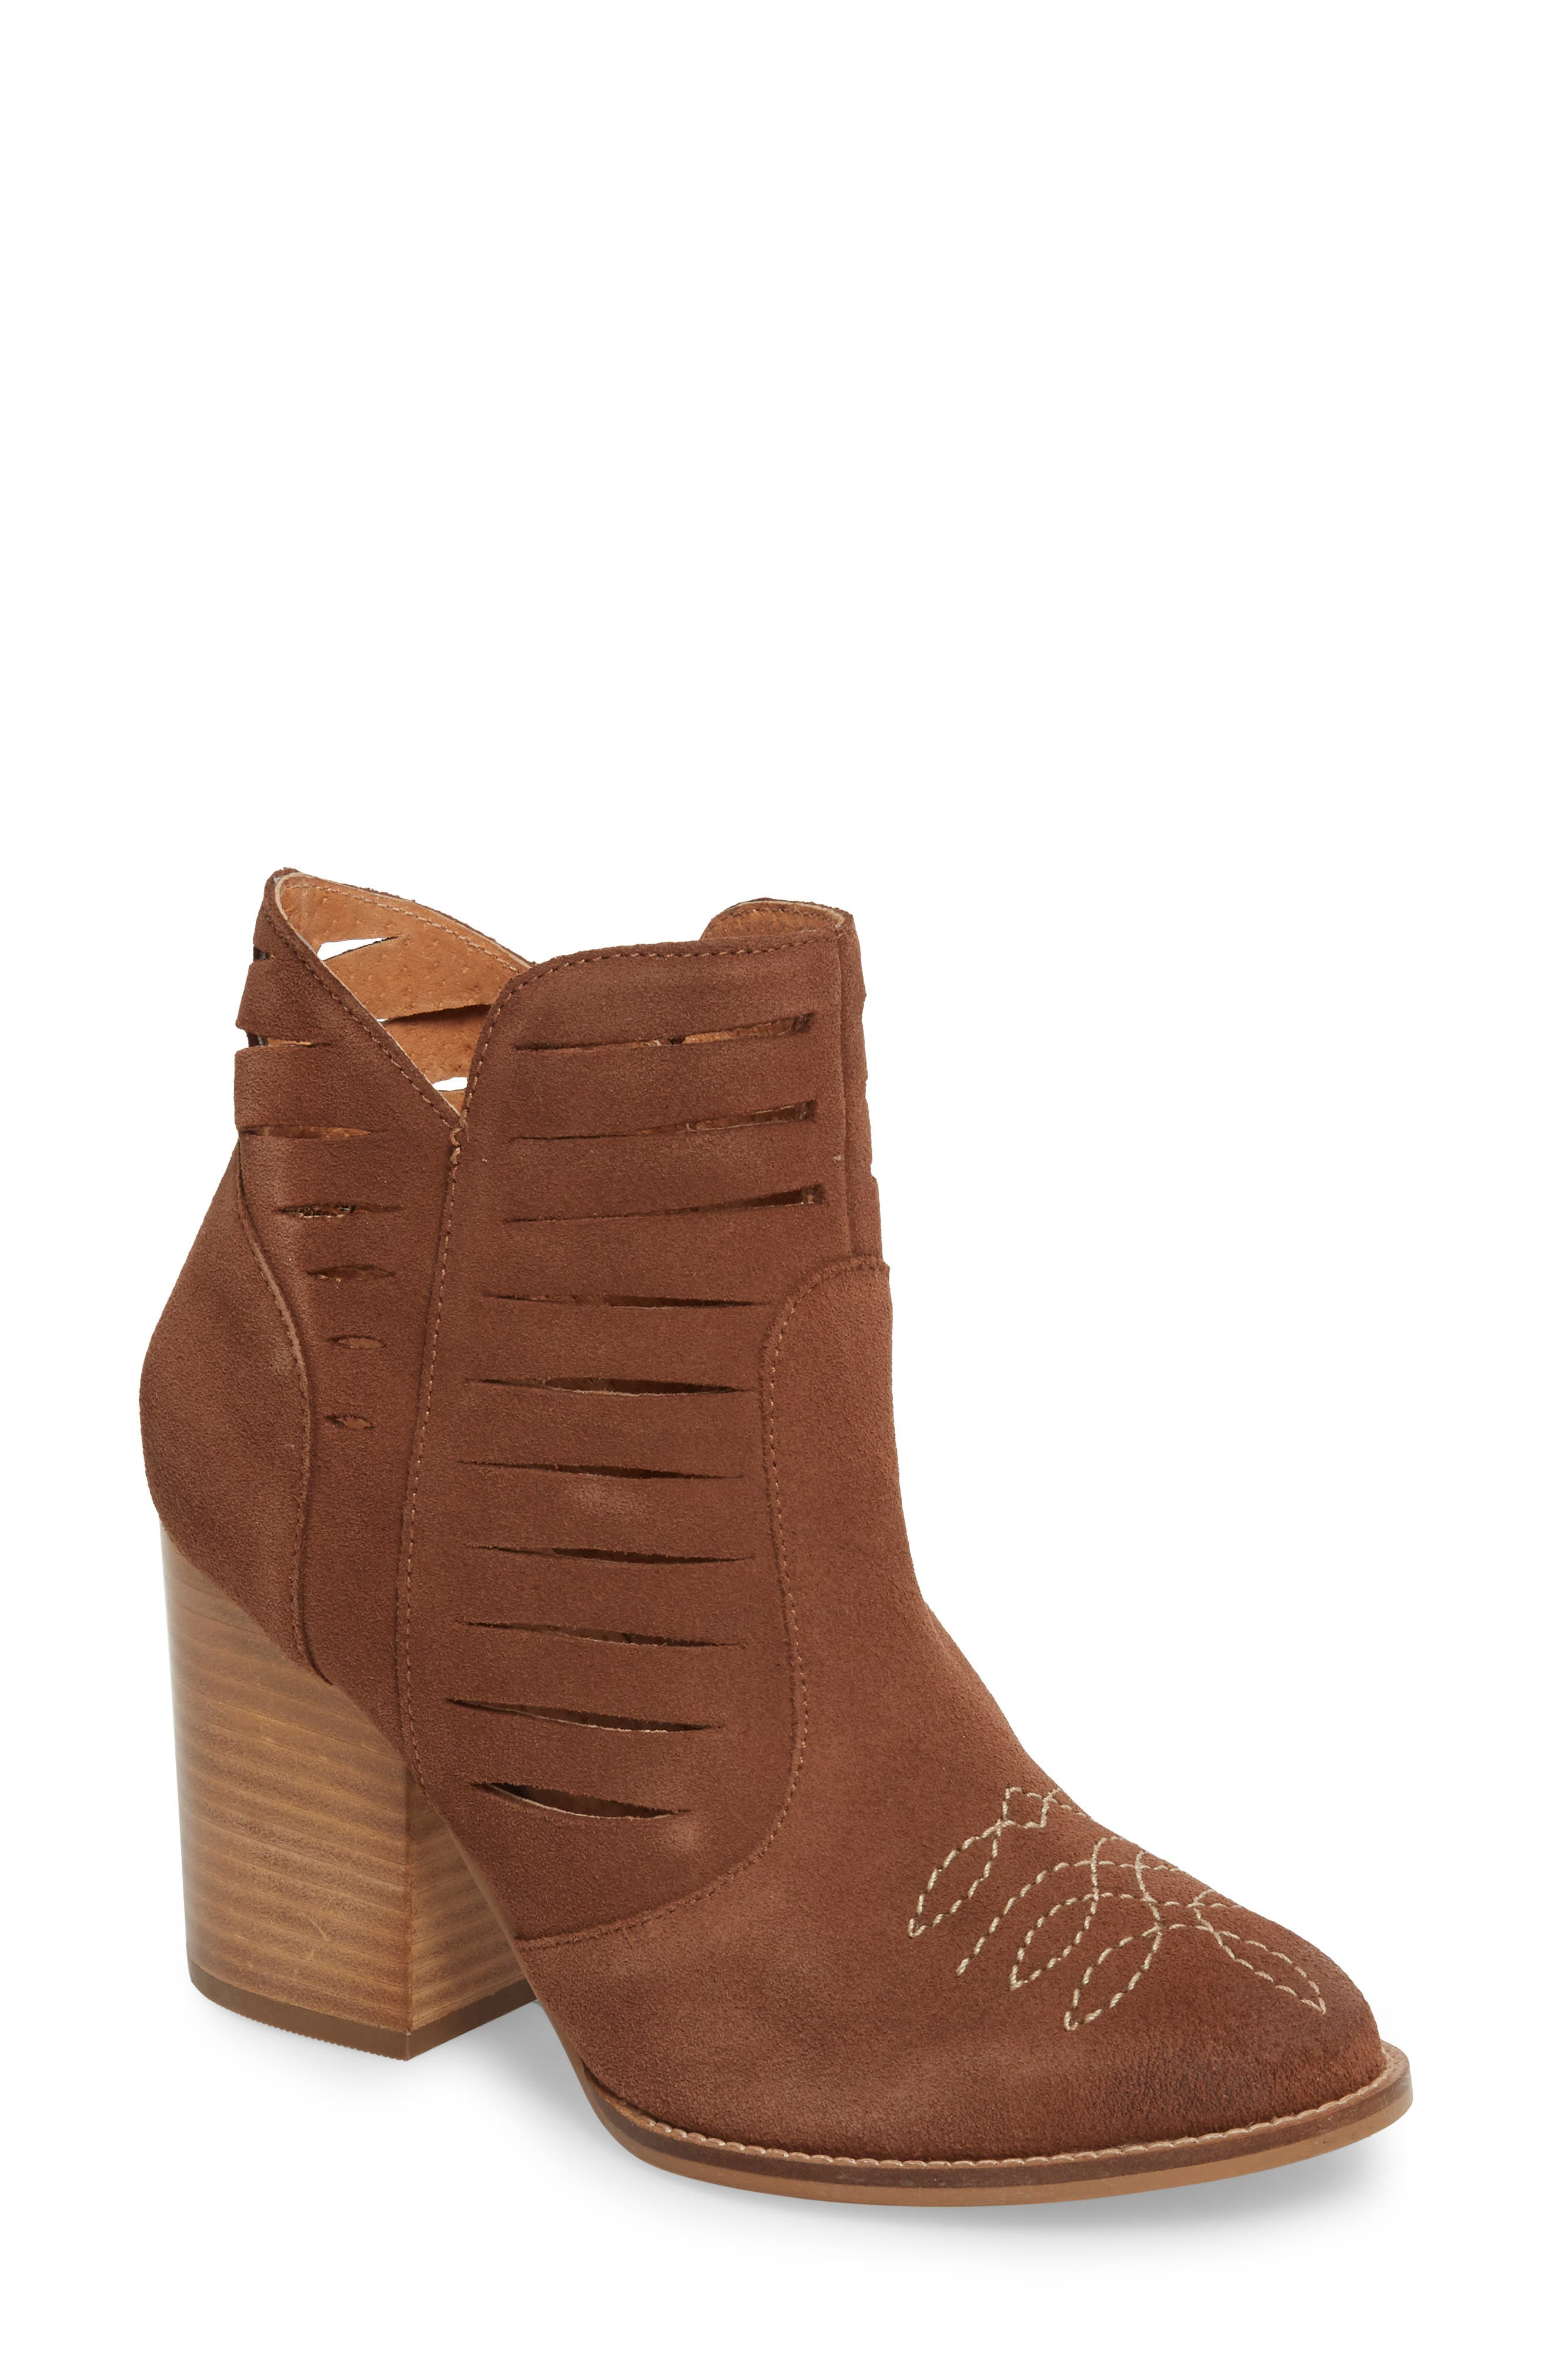 Adriana Western Bootie,                             Main thumbnail 1, color,